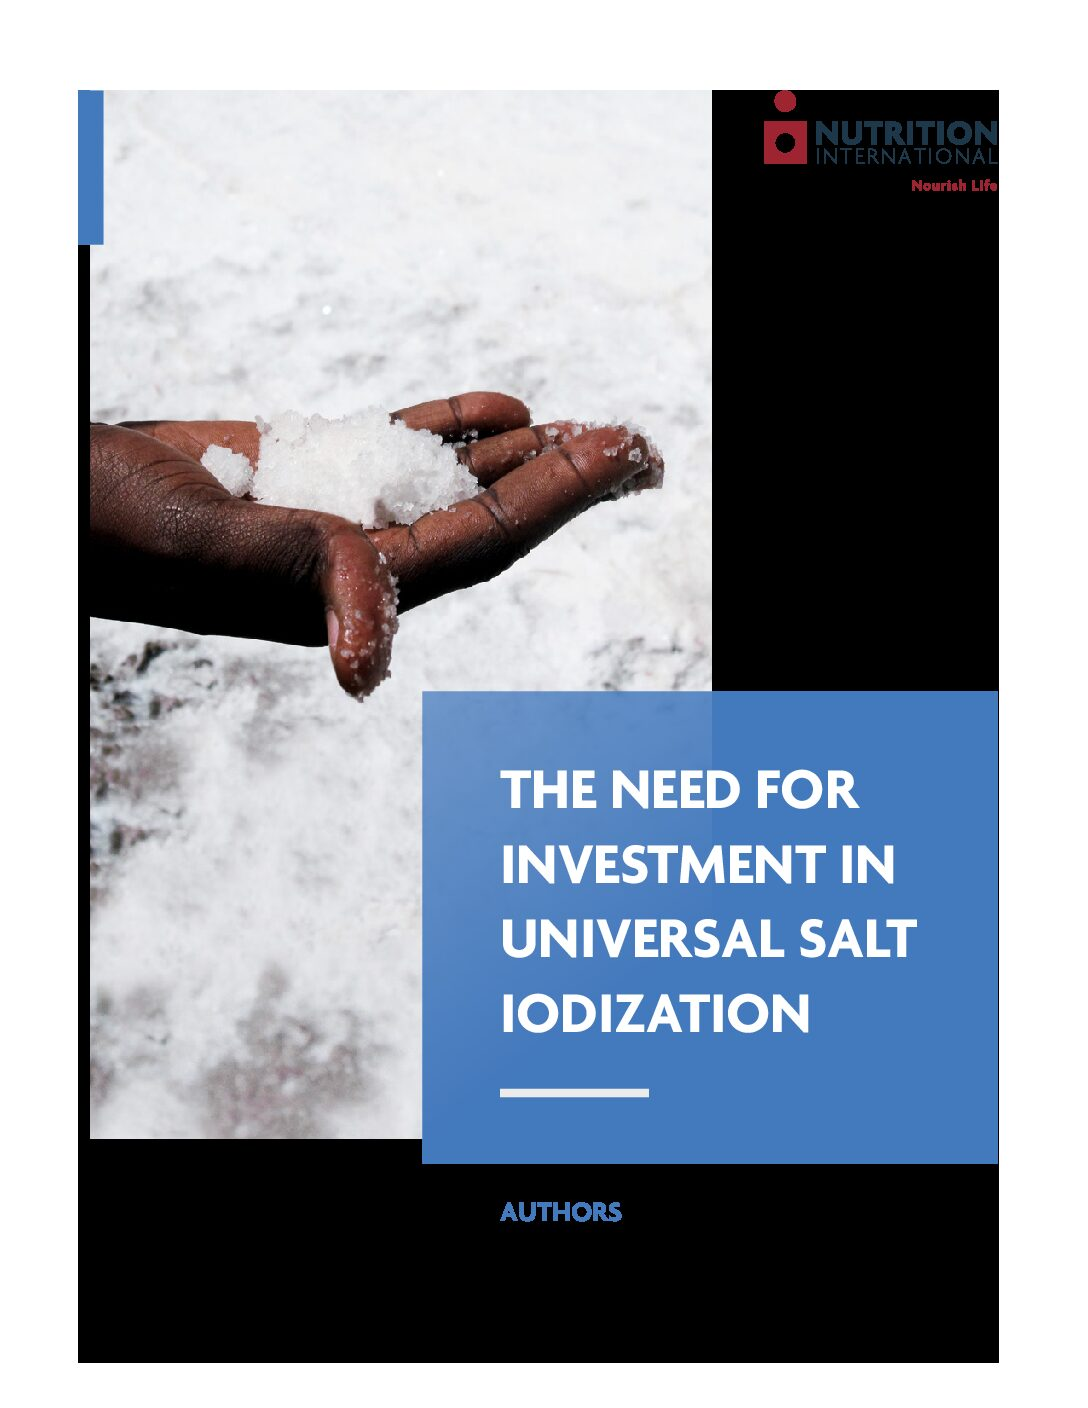 The Need for Investment in Universal Salt Iodization thumbnail